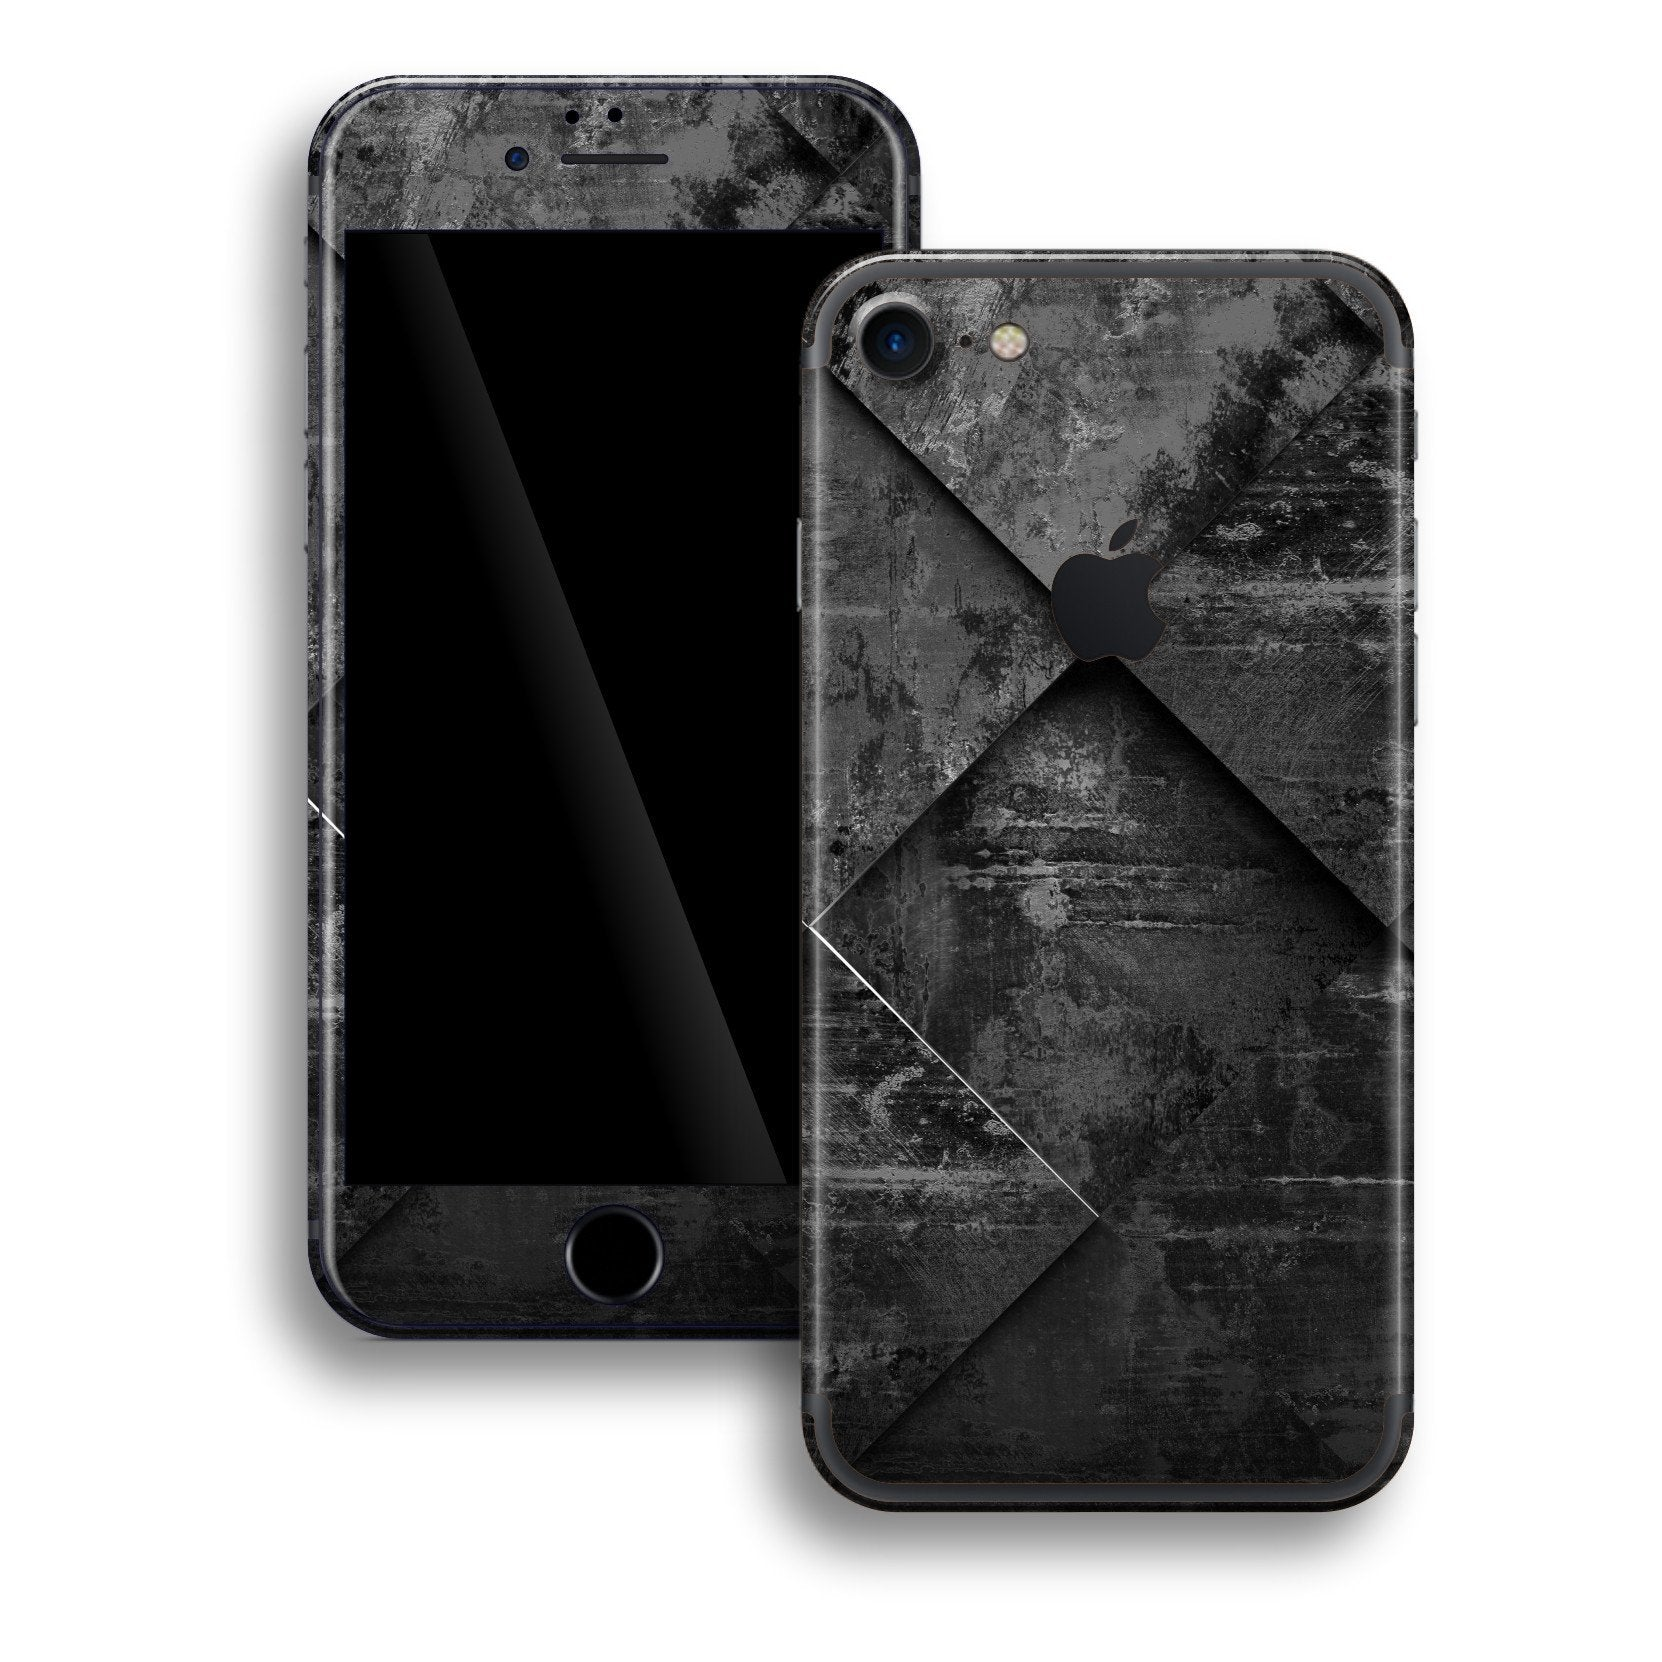 iPhone 8 Print Custom Signature Black Tiles Skin Wrap Decal by EasySkinz